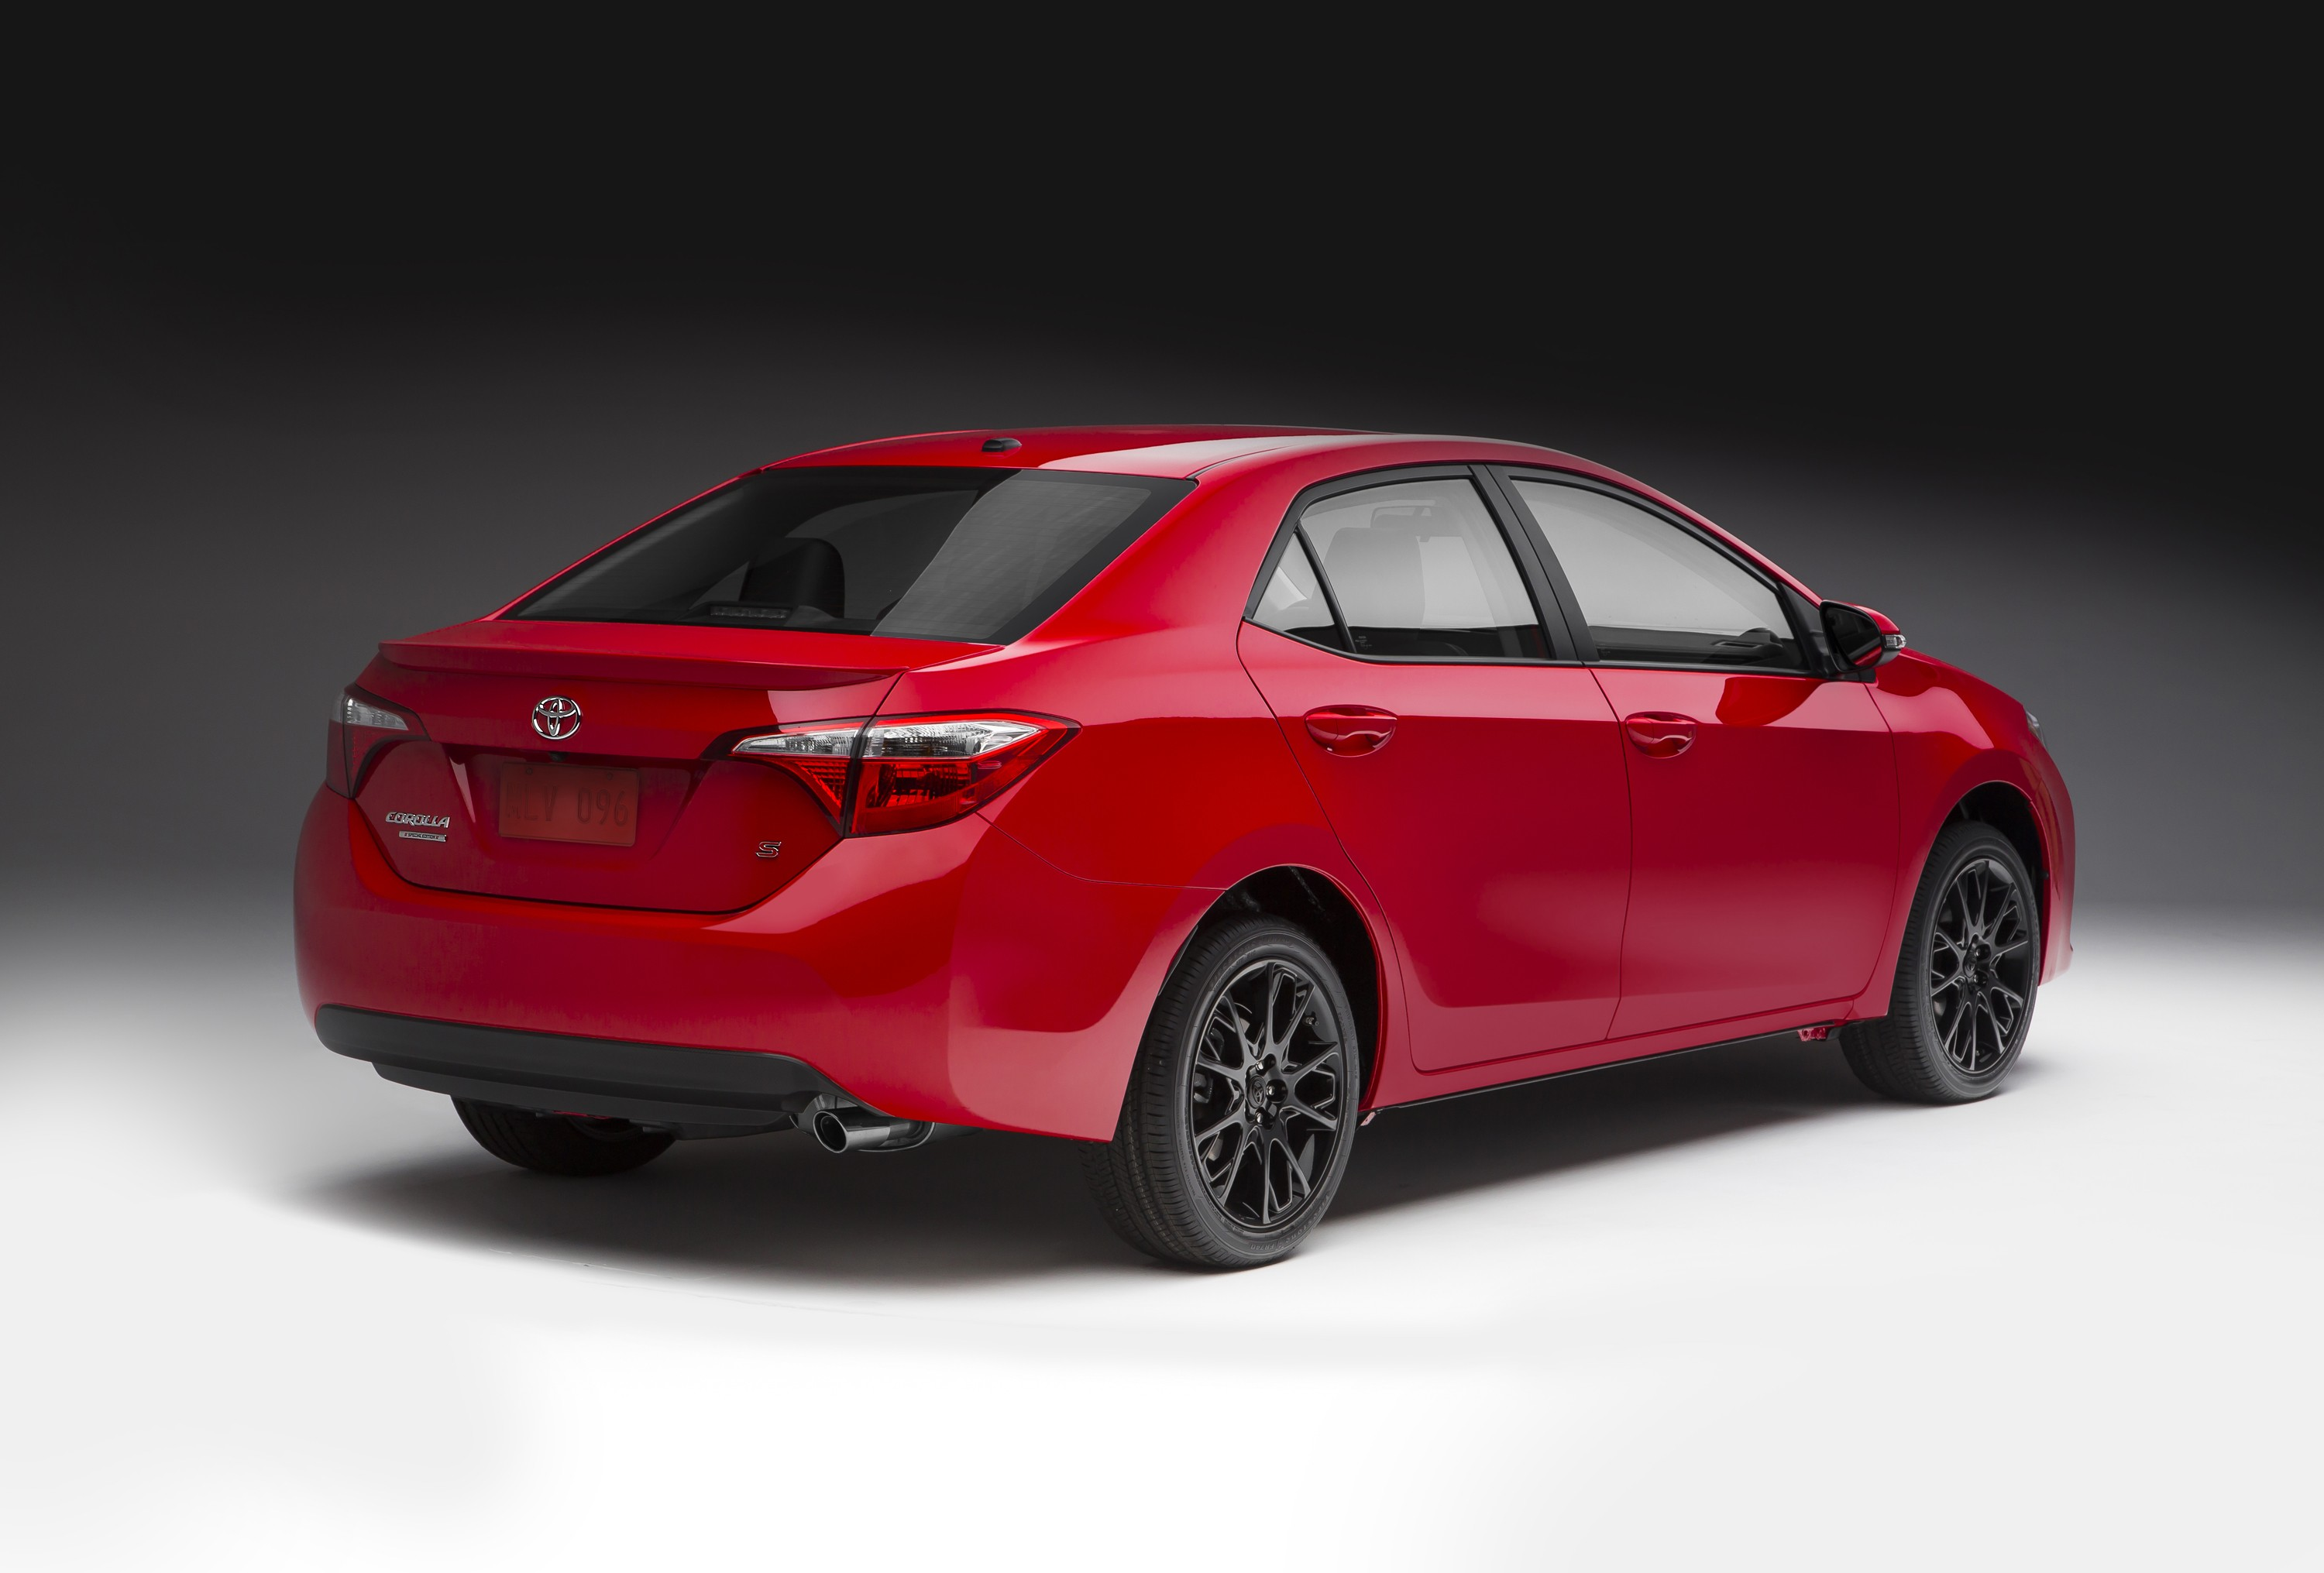 corolla toyota edition special camry editions chicago rear getting sporty thumbnail cheap come tag don autoevolution avalon plus prices debuted